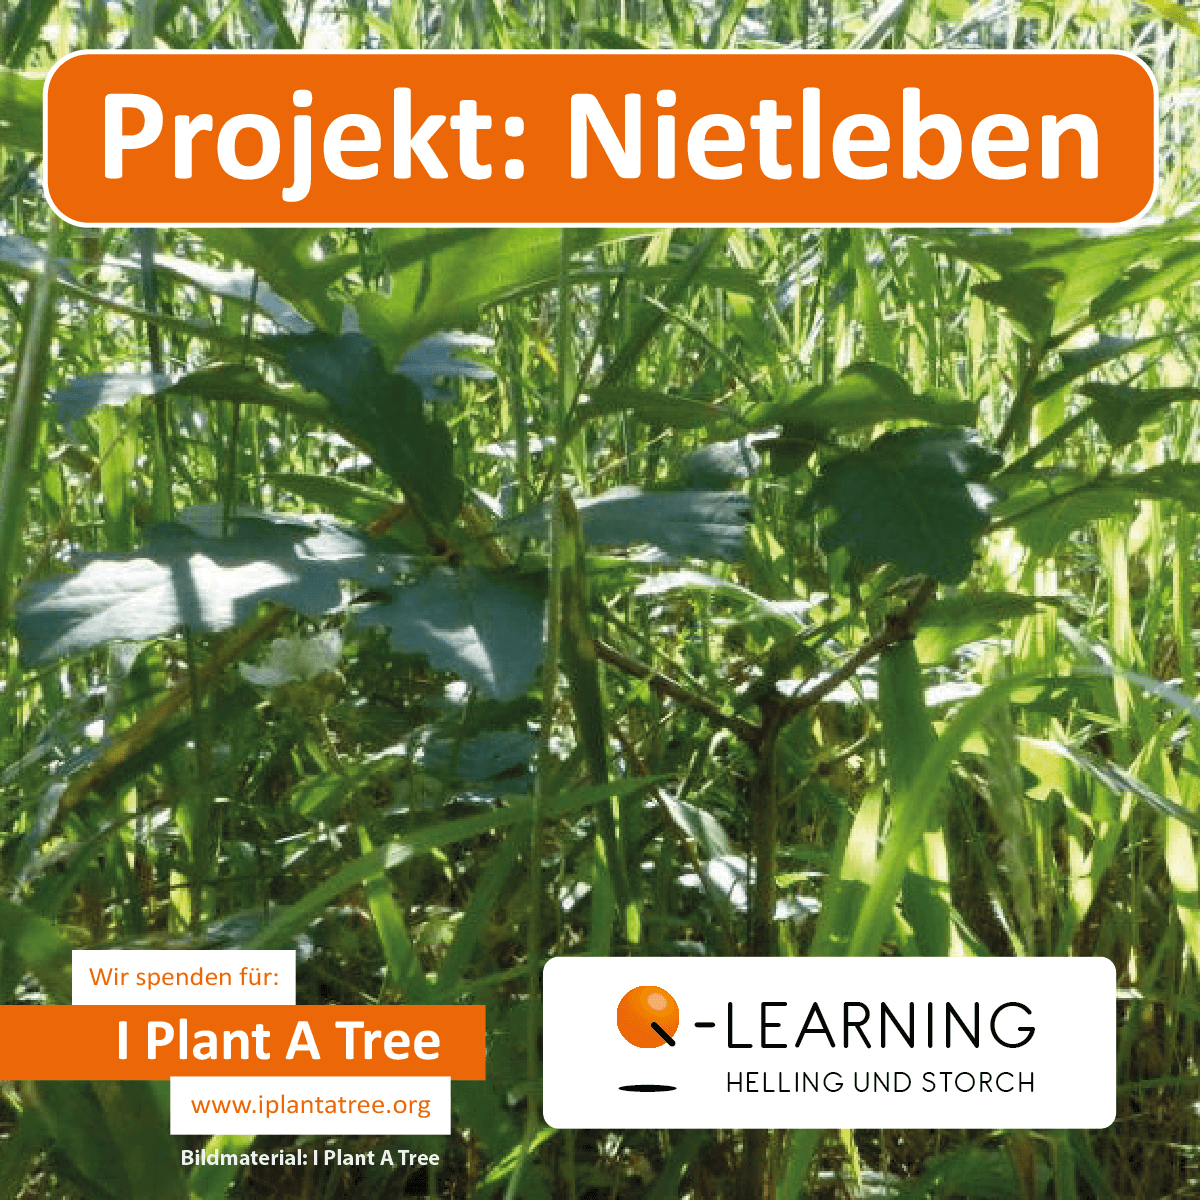 Q-LEARNING | I Plant A Tree Projekt Nietleben 2013